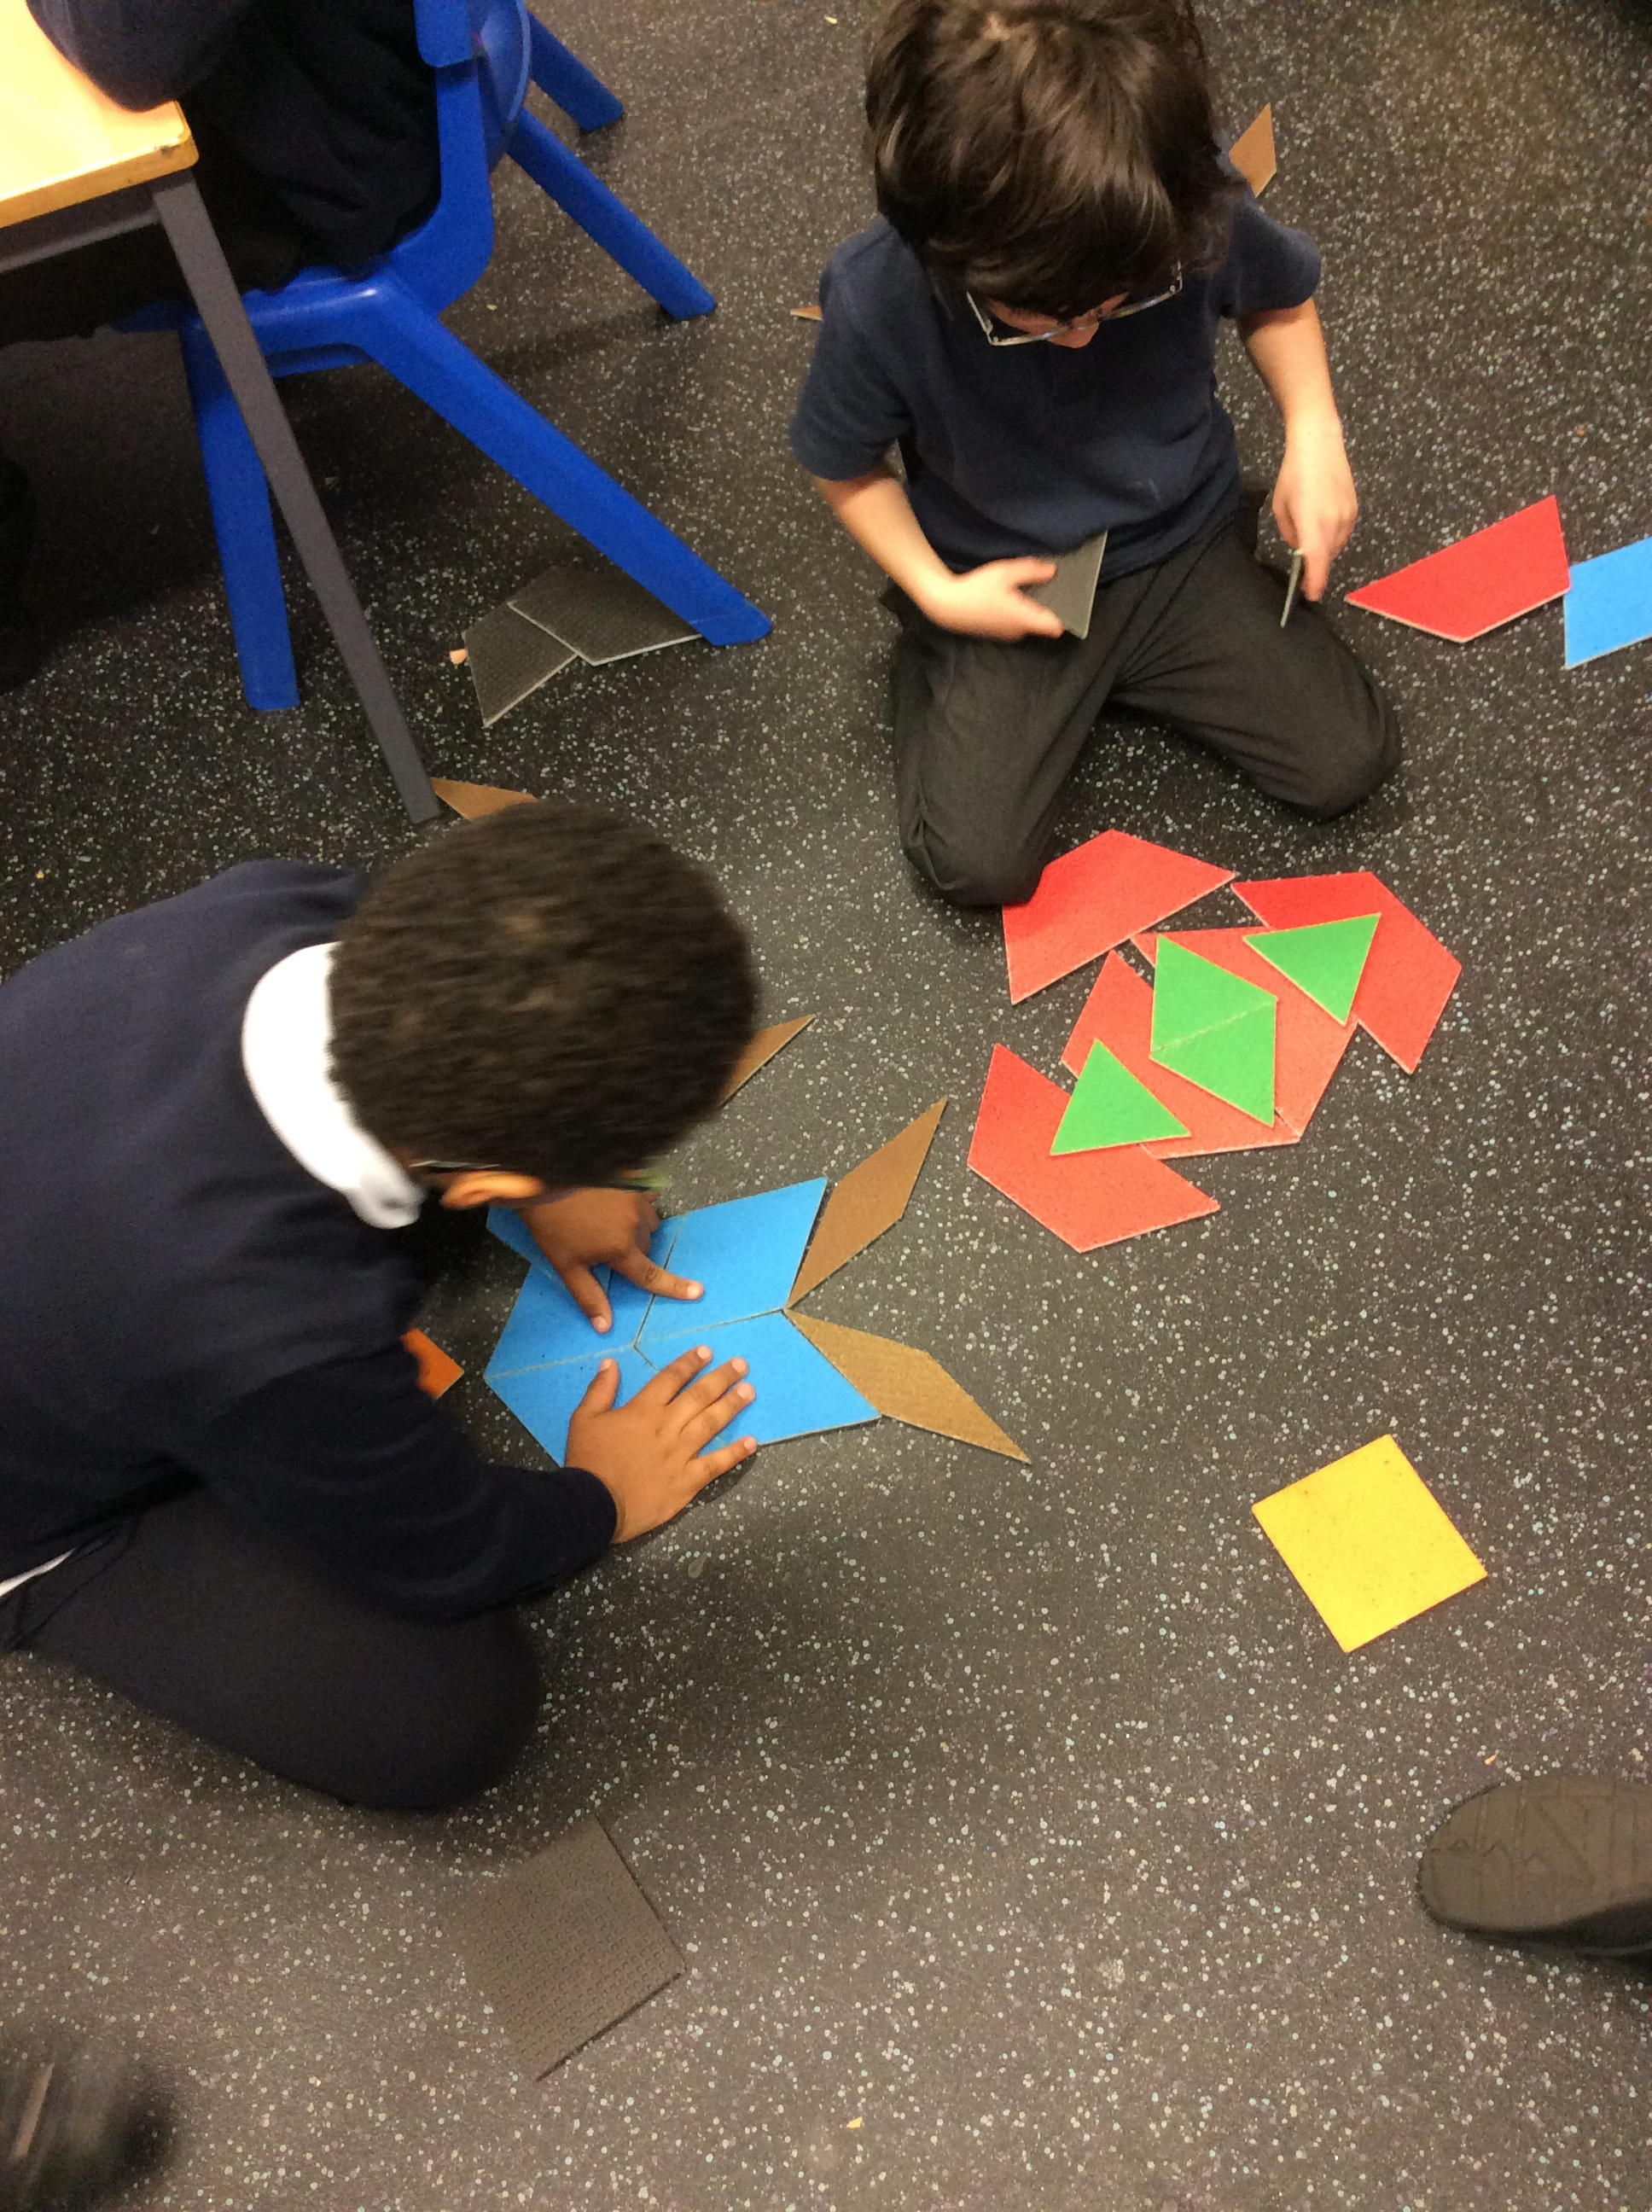 Tiling with 2D shapes